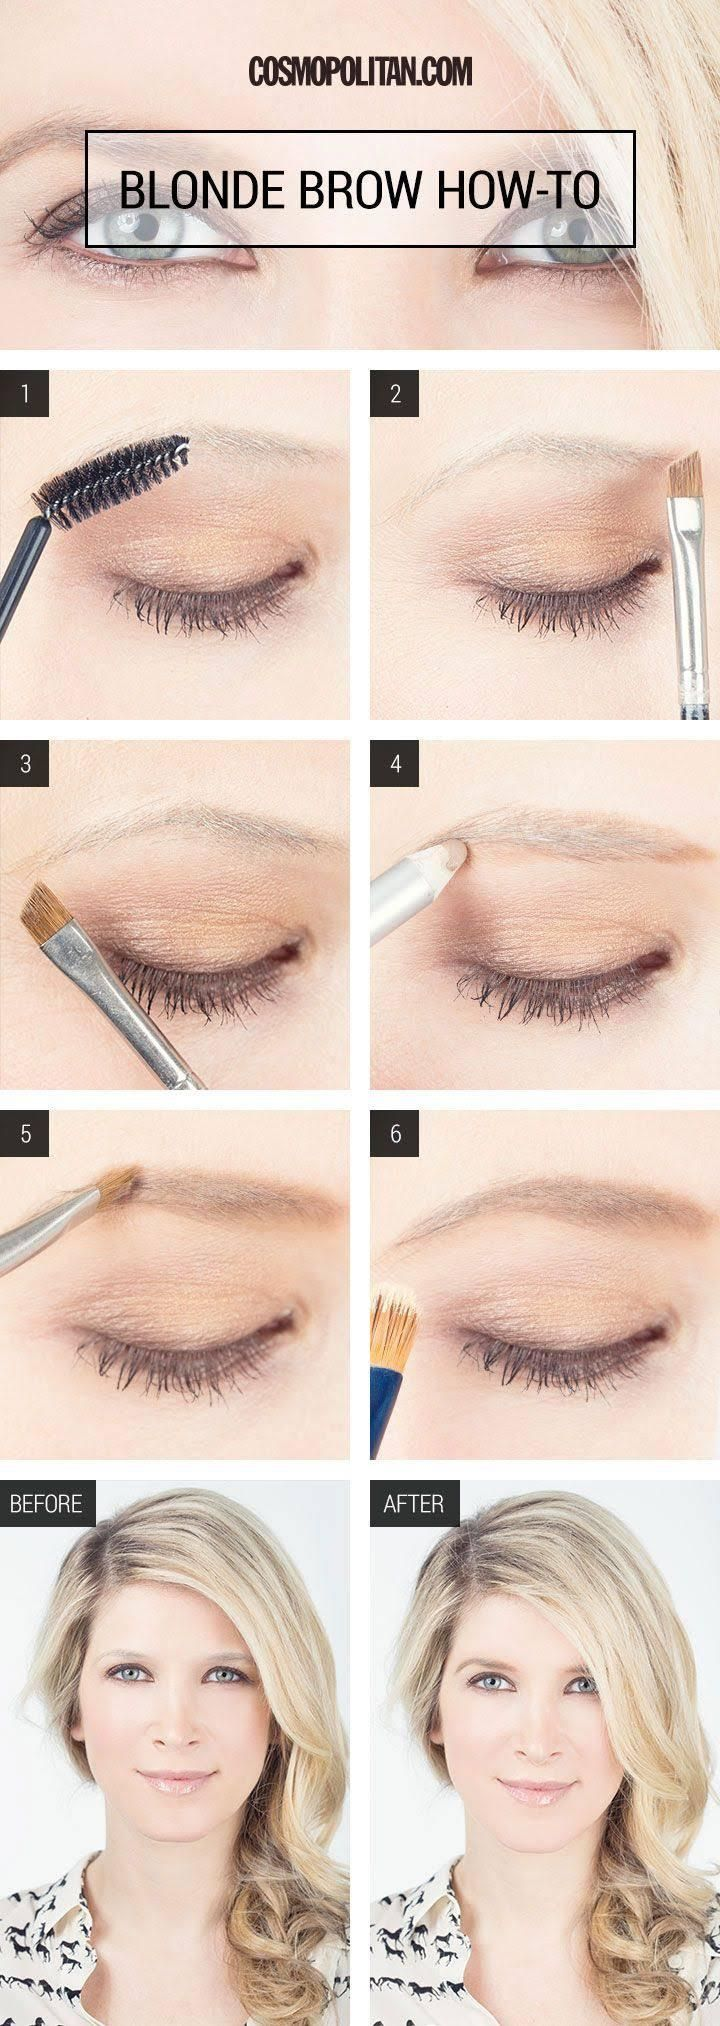 how to use gel eyeliner on eyebrows